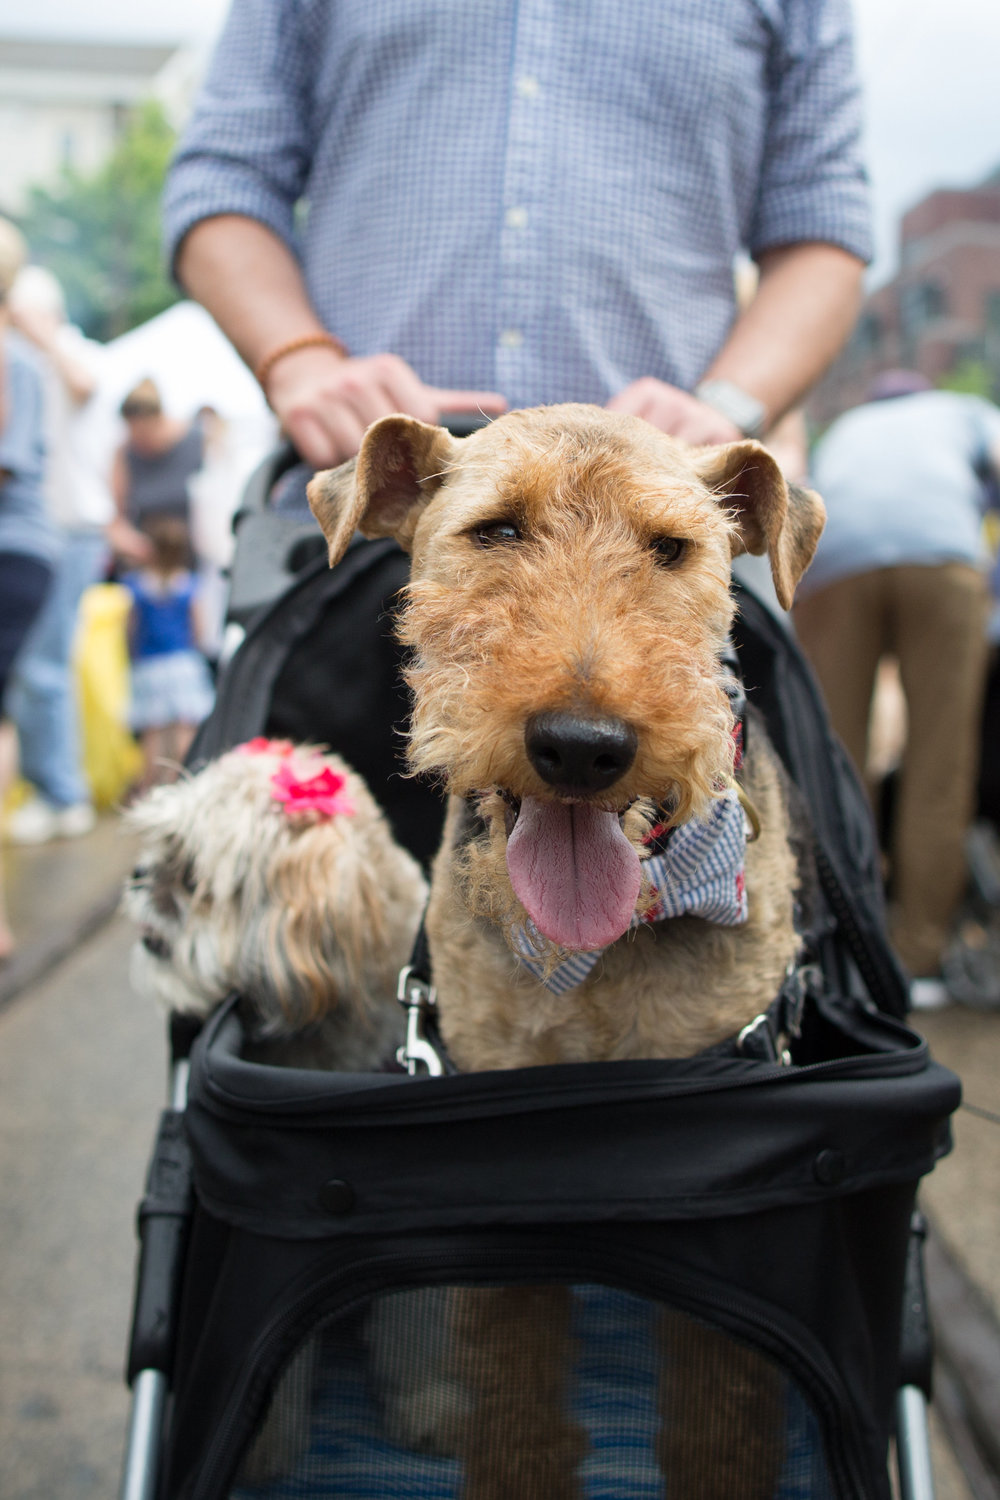 The Home & Garden Stroll, like past outdoor festivals in Chestnut Hill, is pet friendly. (Photos from a prior, pre-pandemic Home & Garden Festival, courtesy of the Chestnut Hill Business District)